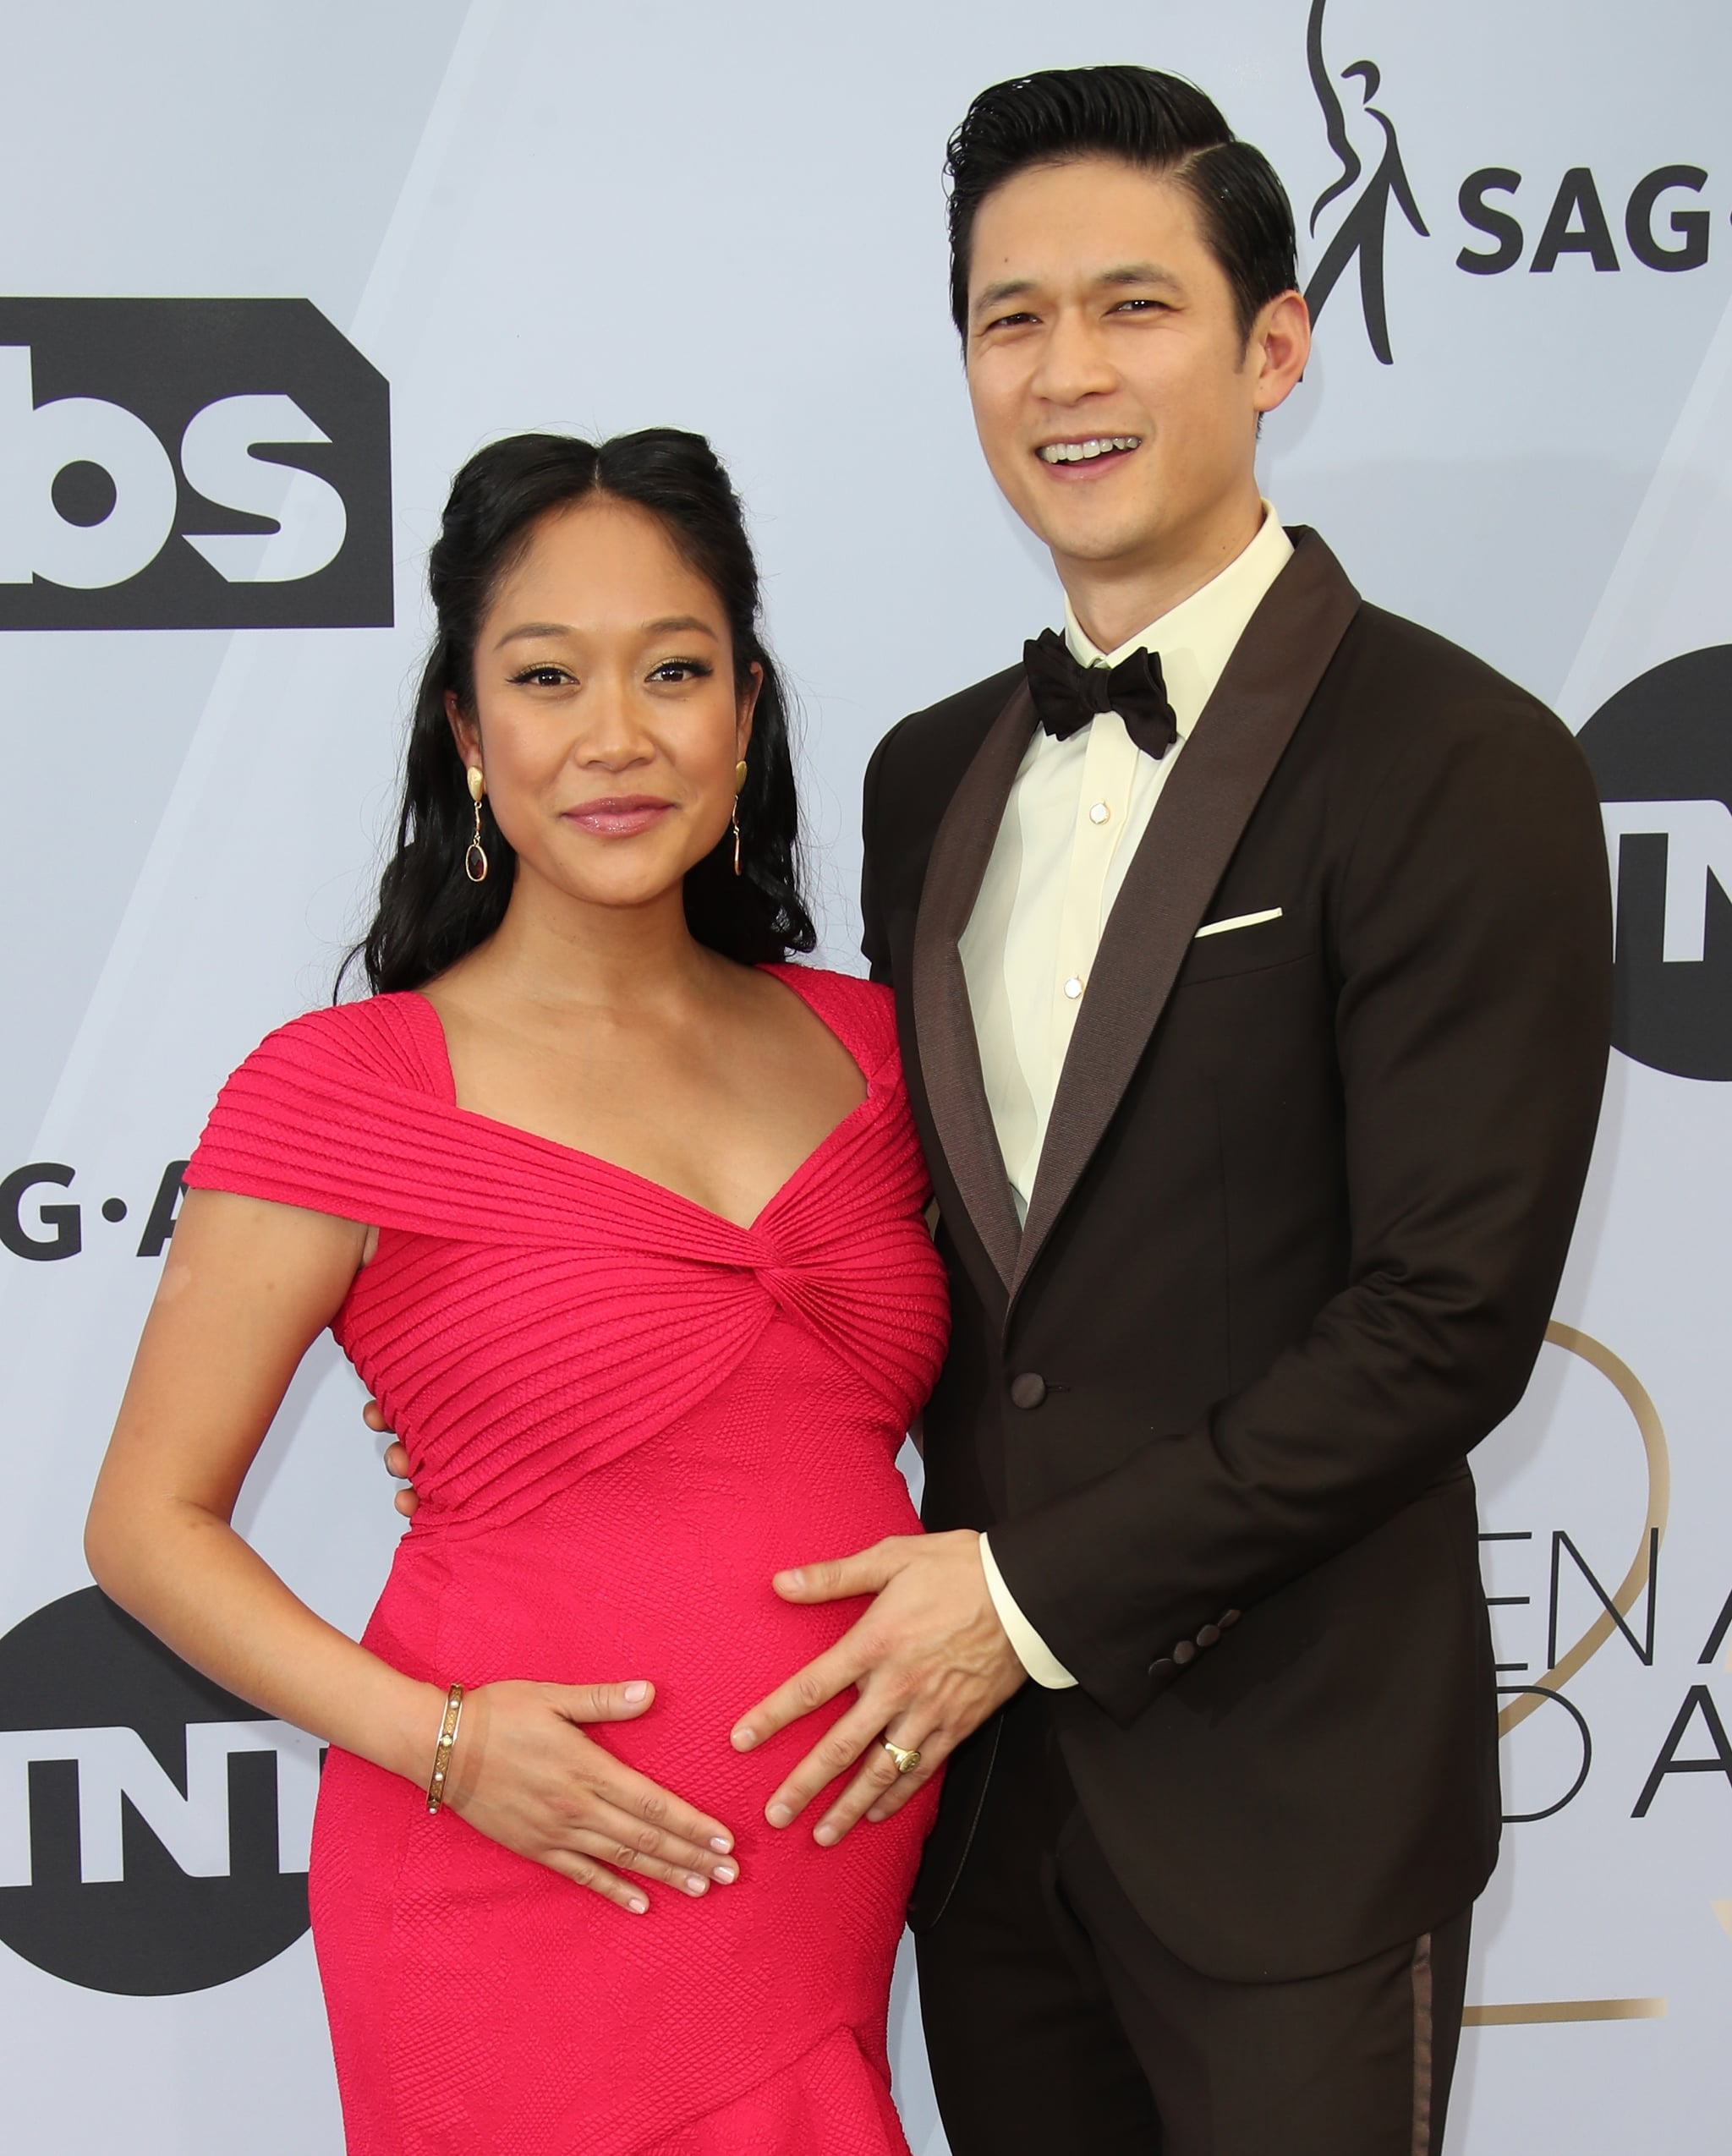 LOS ANGELES, CA - JANUARY 27: (L-R) Shelby Rabara and Harry Shum Jr. attend the 25th Annual Screen Actors Guild Awards at The Shrine Auditorium on January 27, 2019 in Los Angeles, California. (Photo by Dan MacMedan/Getty Images)